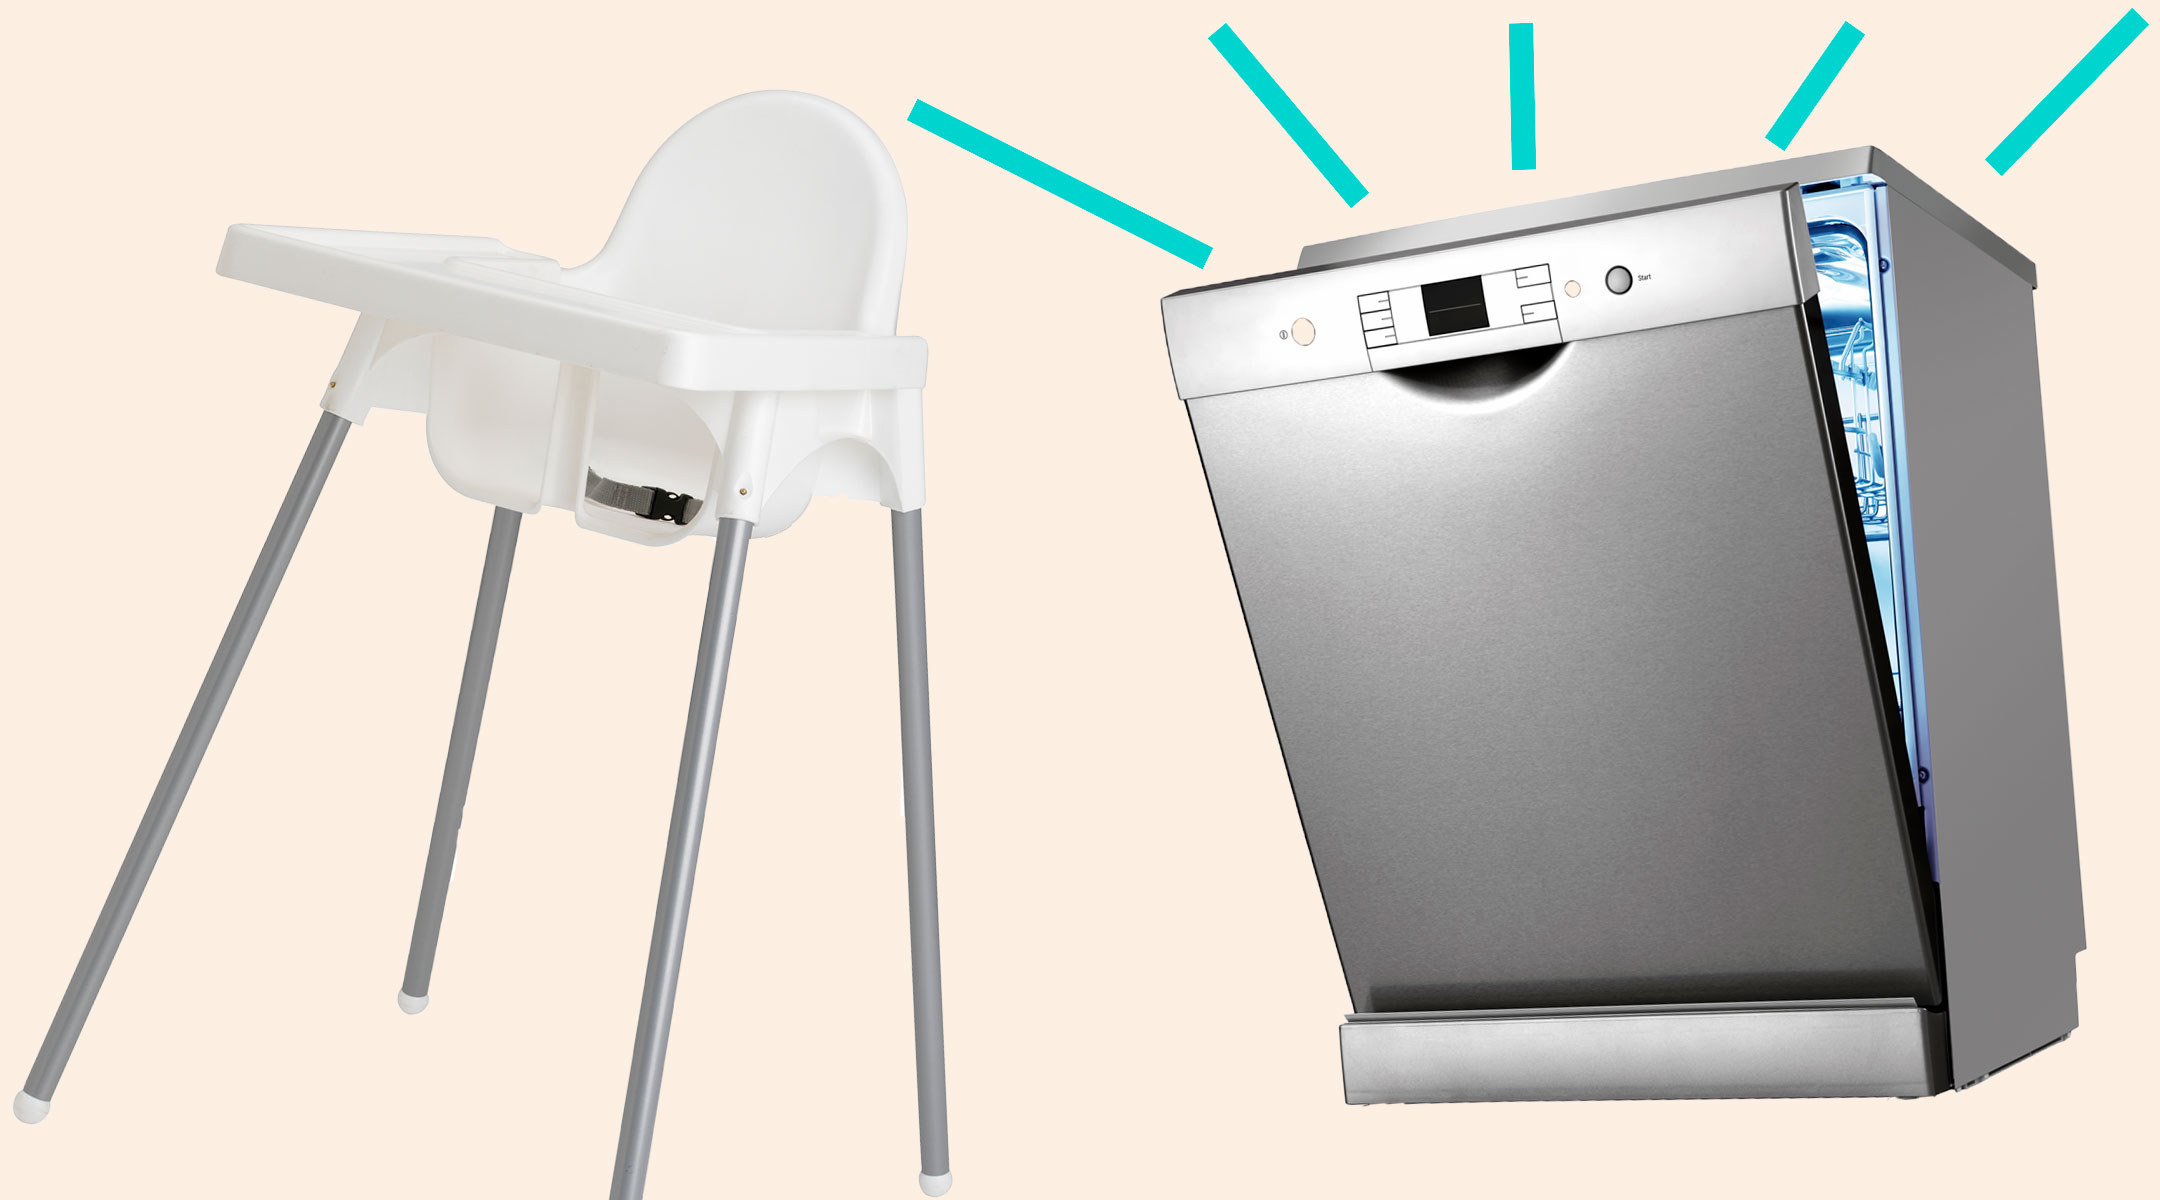 ikea high chairs relax the back chair for sale mom shares simple hack cleaning her